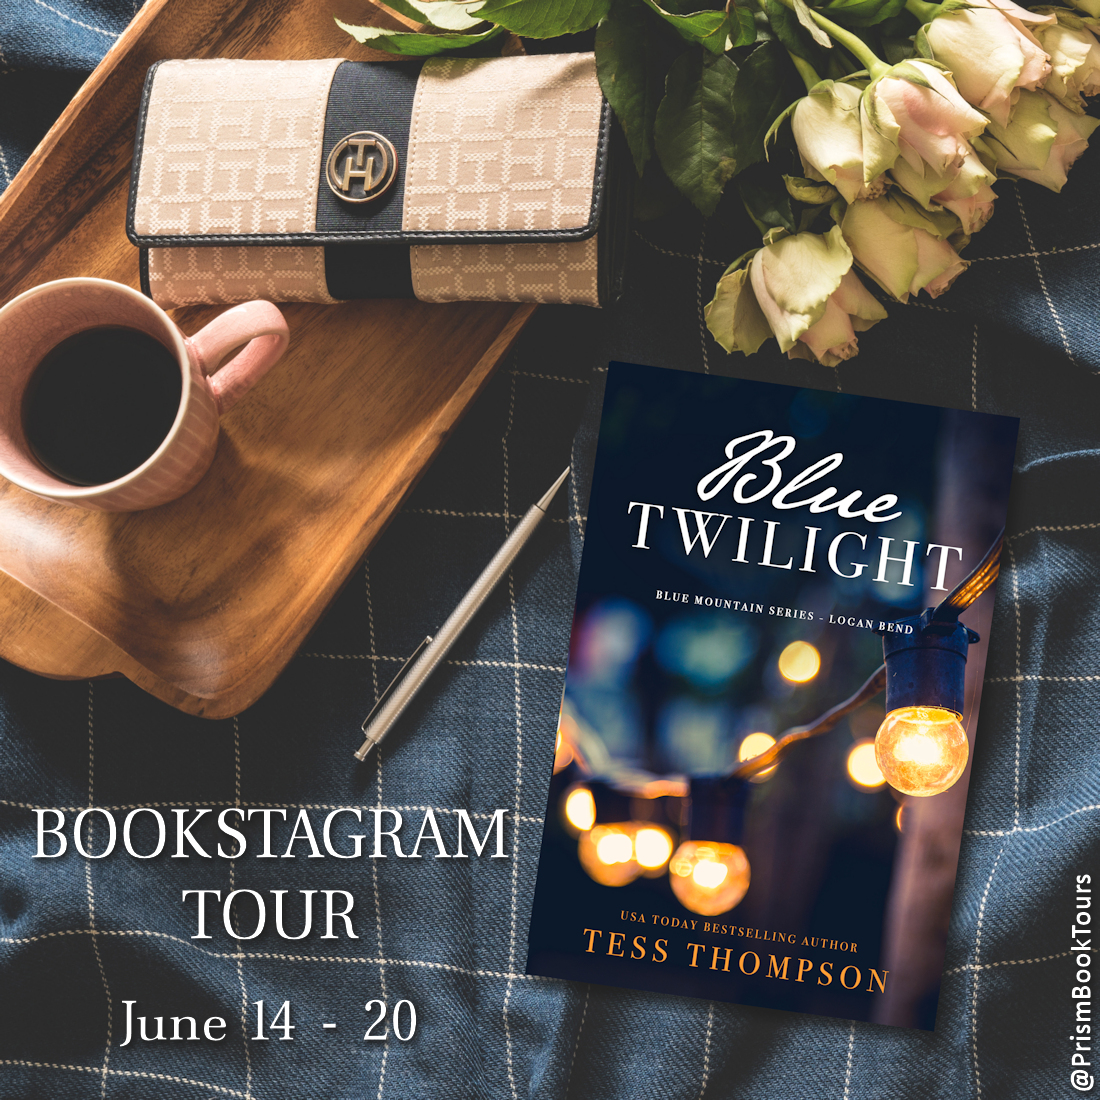 Check out the Bookstagram Tour for BLUE TWILIGHT by Tess Thompson!